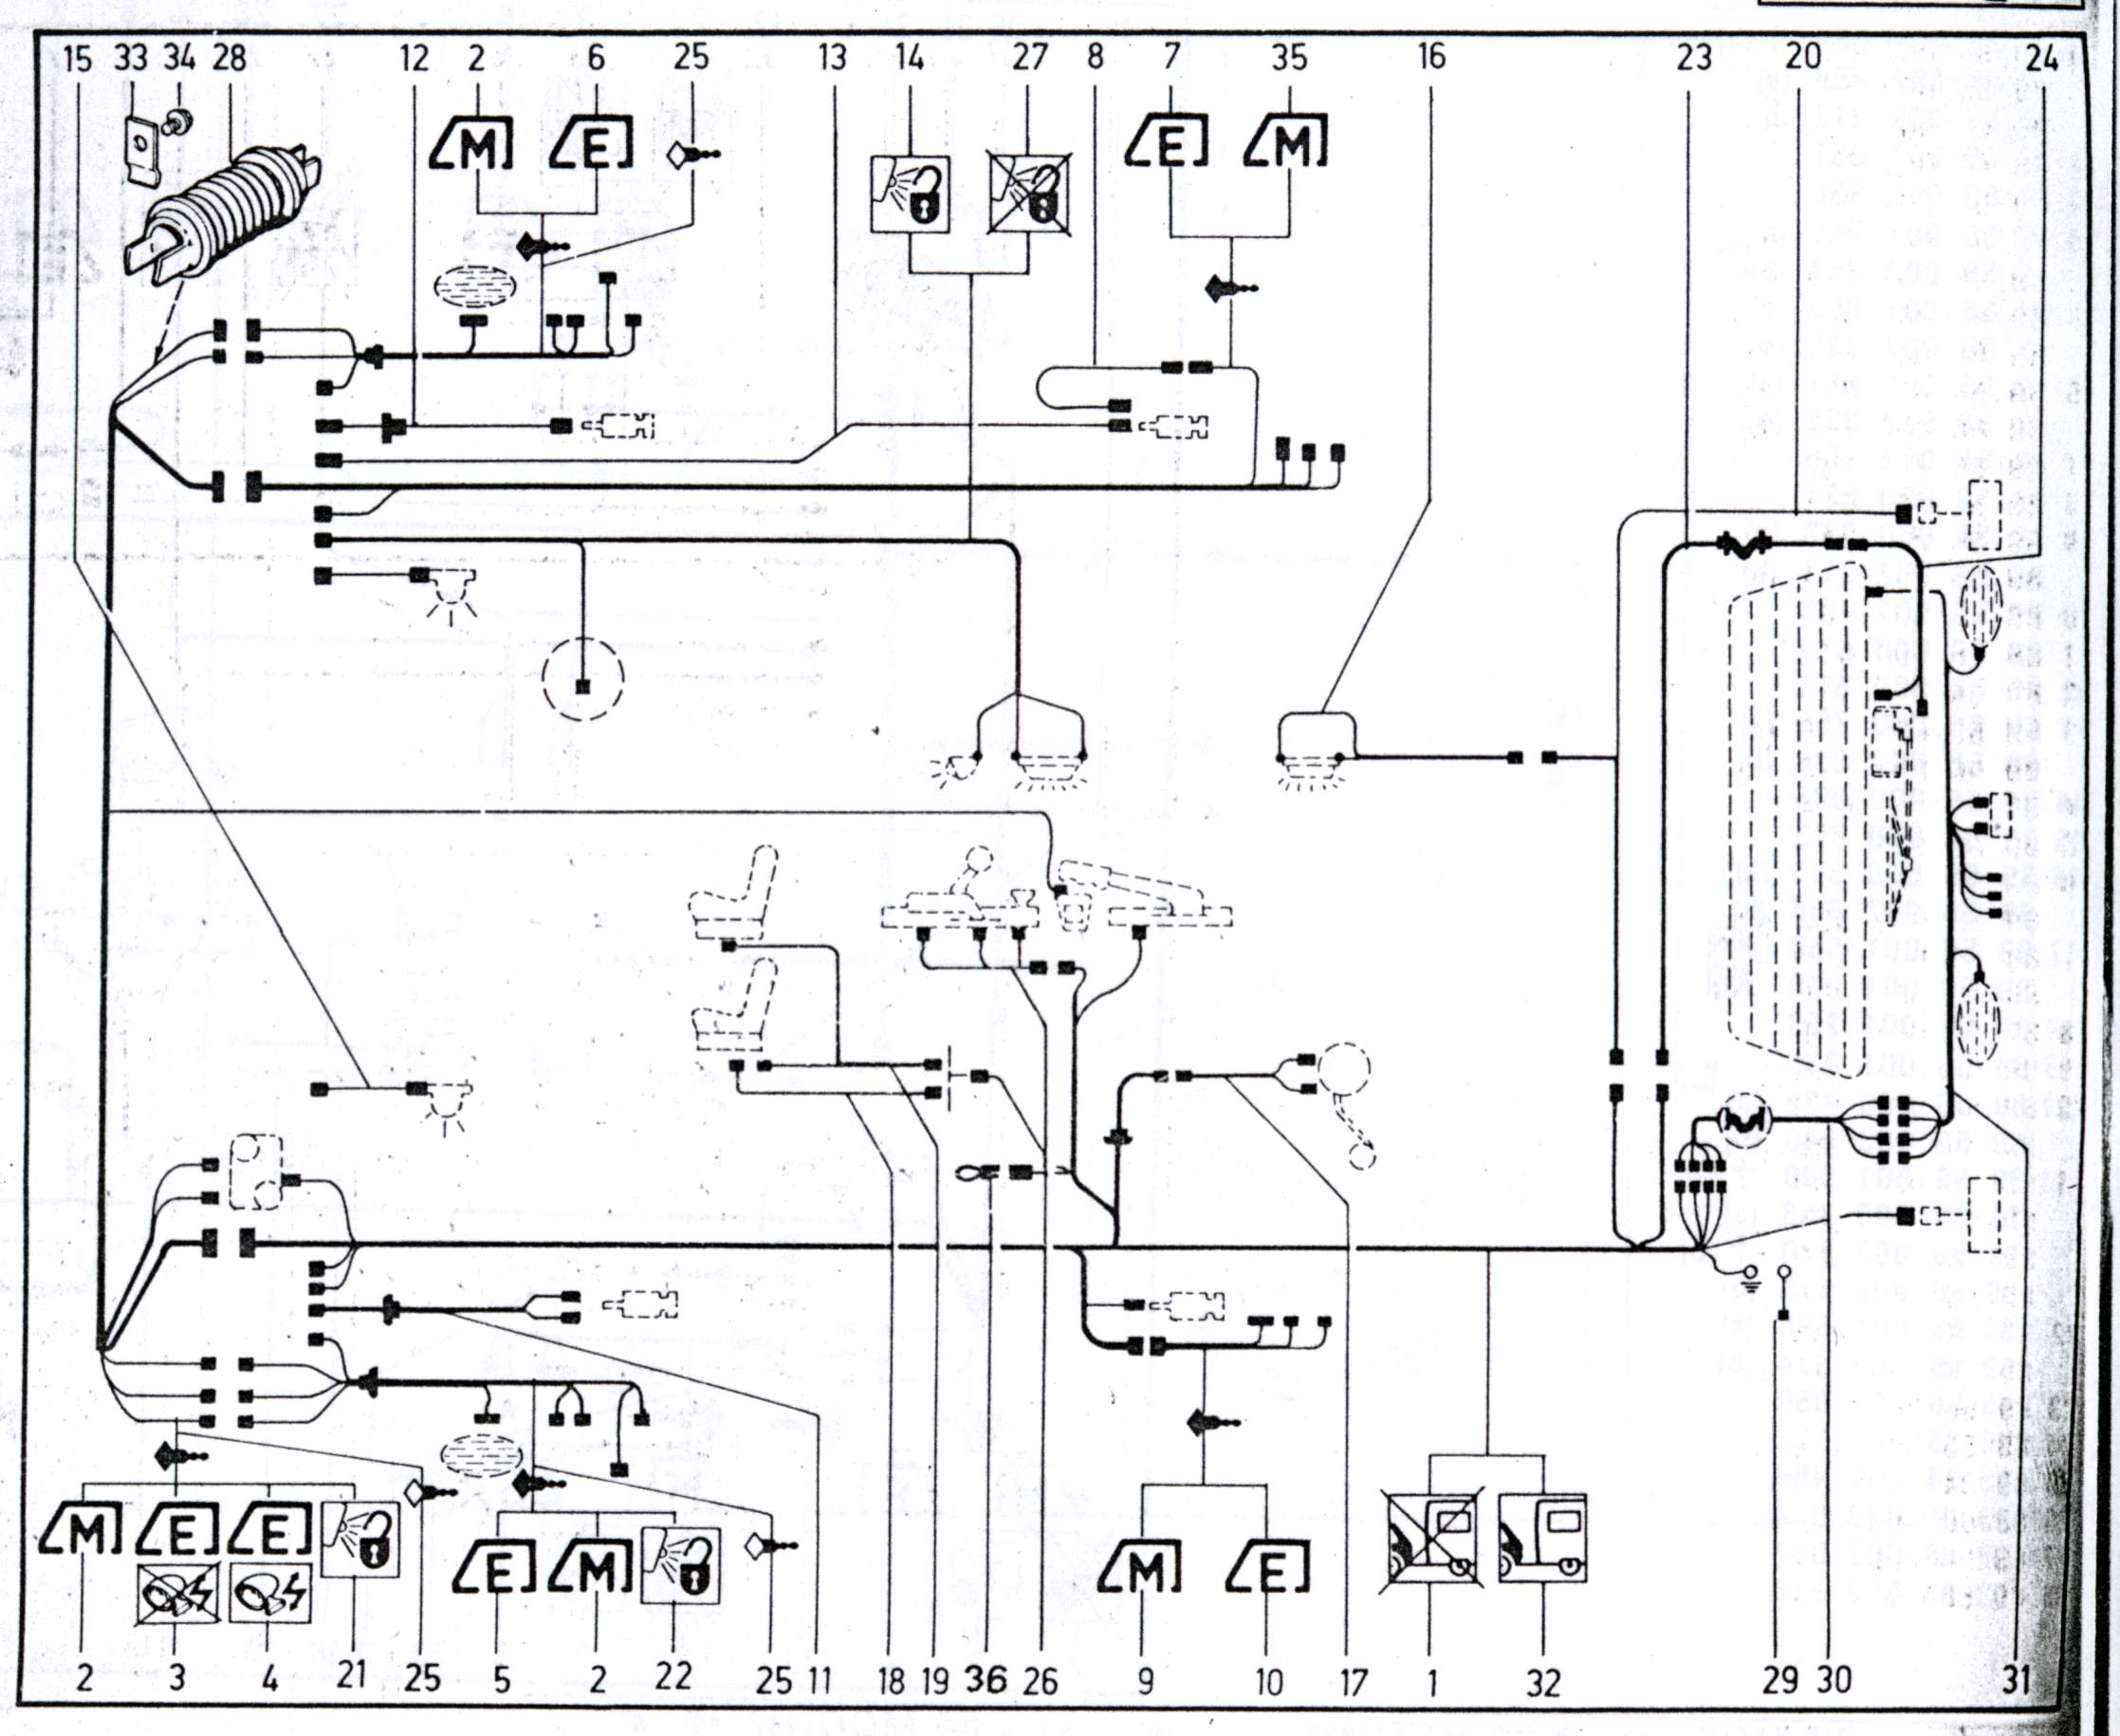 1989 jeep comanche fuse diagram